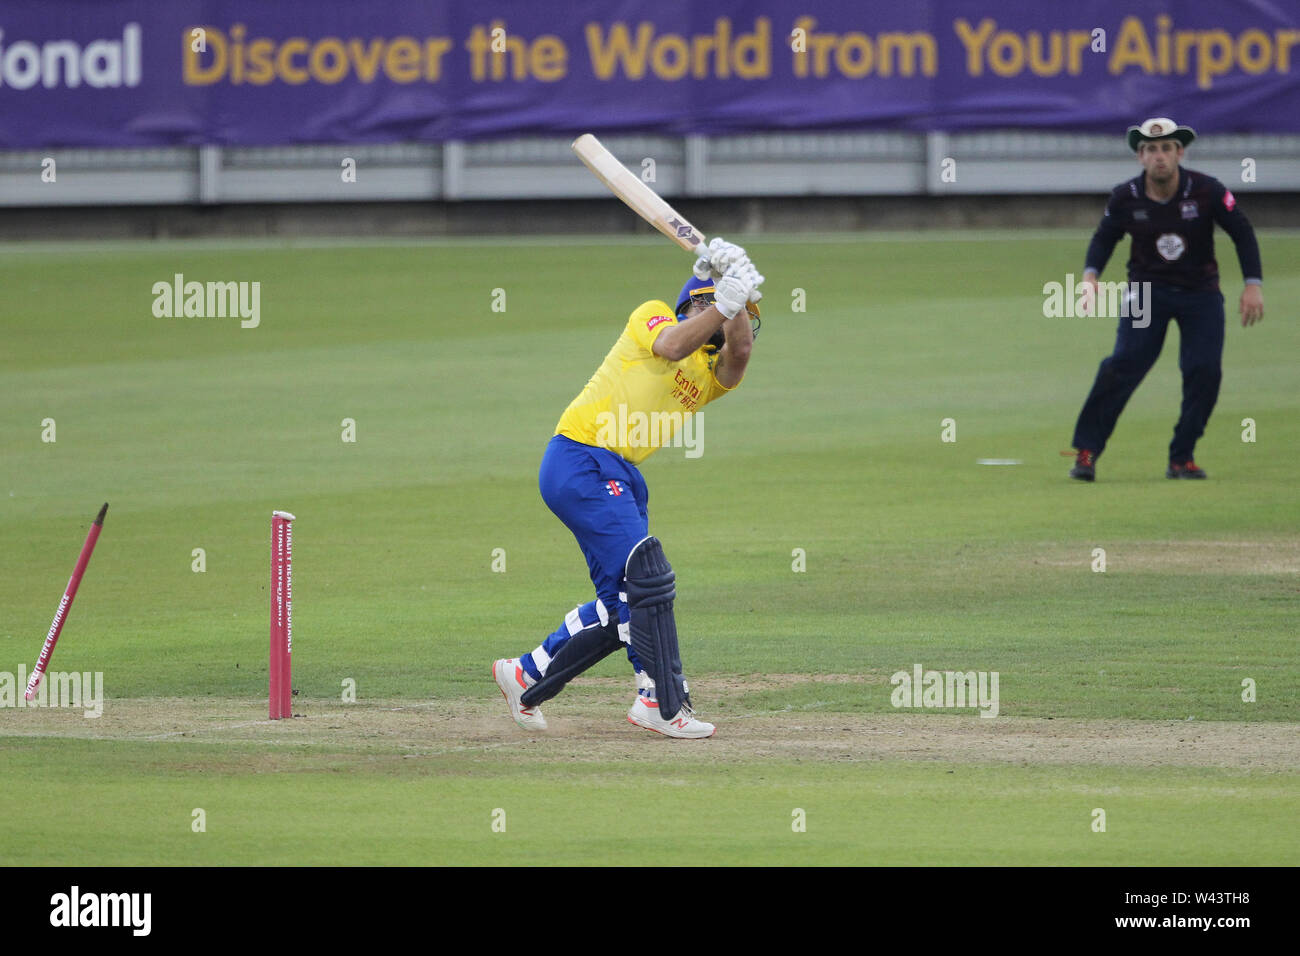 CHESTER LE STREET, ENGLAND 19th July 2019. 2019. Ben Raine of Durham is bowled by Northants' Faheem Ashraf during the Vitality T20 Blast match between Durham County Cricket Club and Northamptonshire County Cricket Club at Emirates Riverside, Chester le Street on Friday 19th July 2019. (Credit: Mark Fletcher   MI News ) Credit: MI News & Sport /Alamy Live News - Stock Image